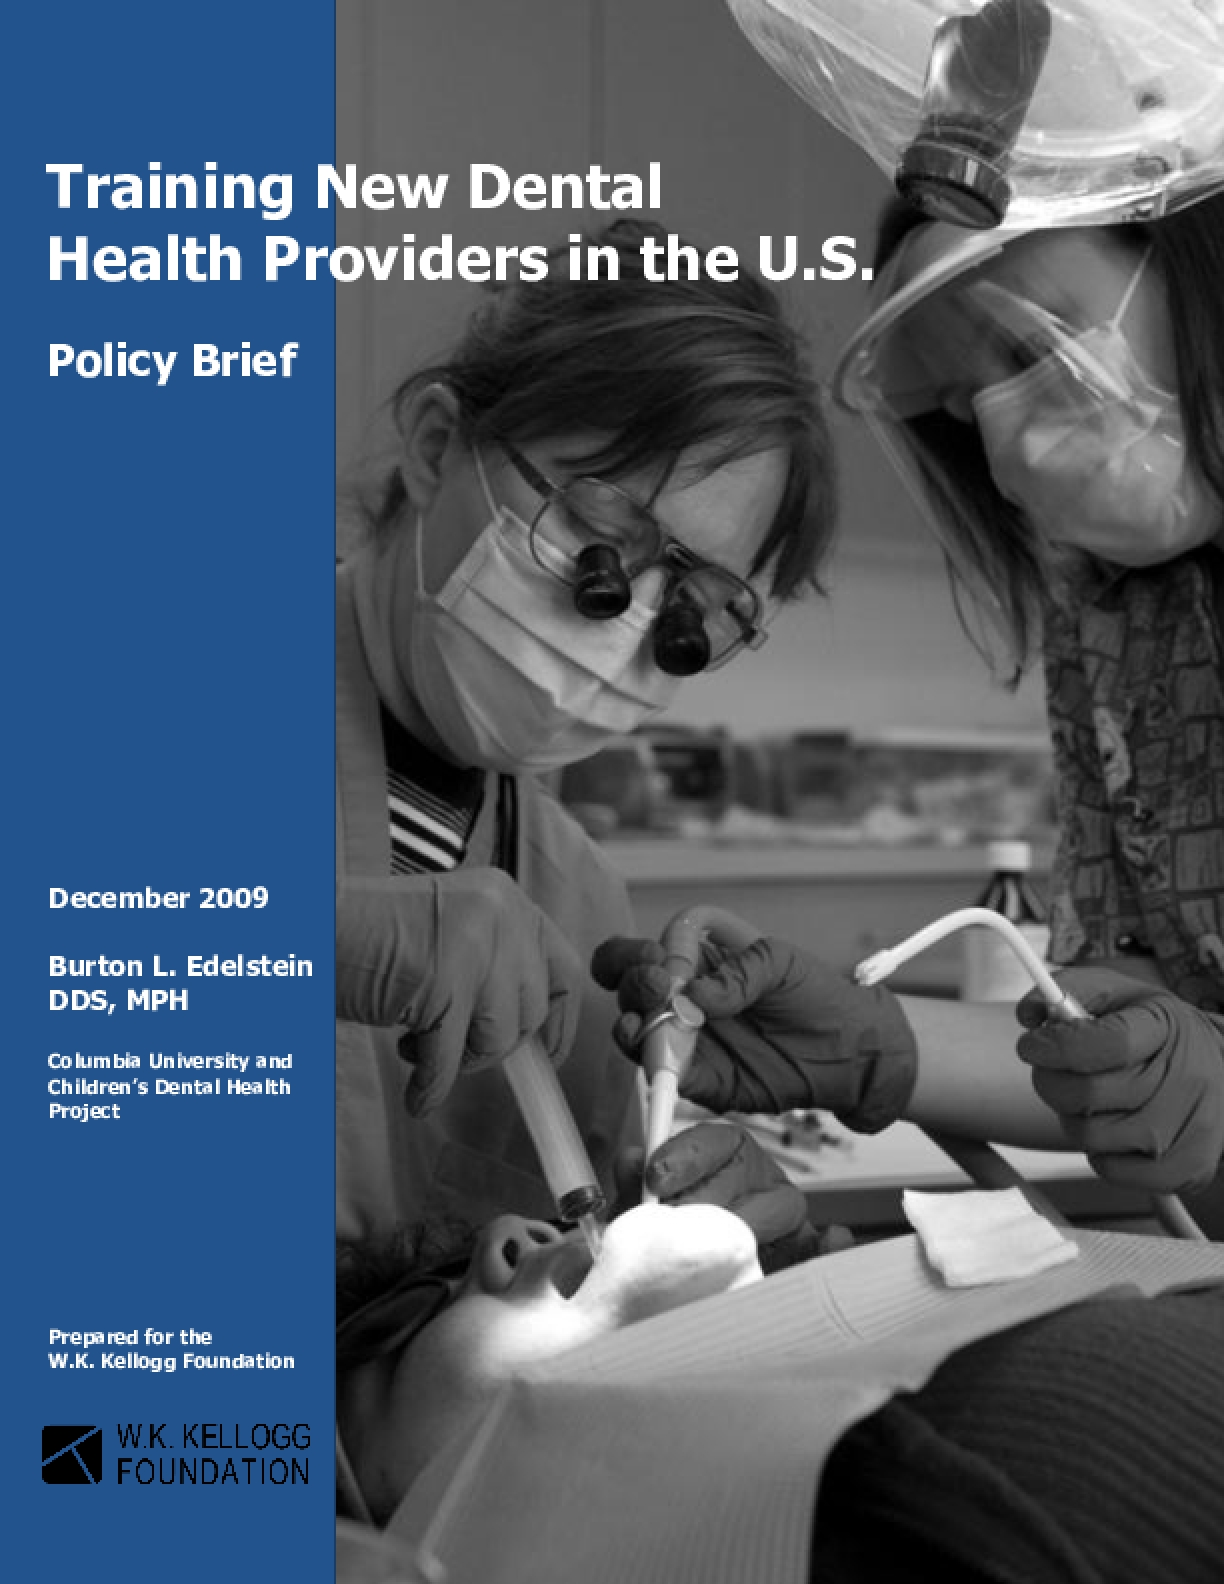 Training New Dental Health Providers in the U.S. (Policy Brief)